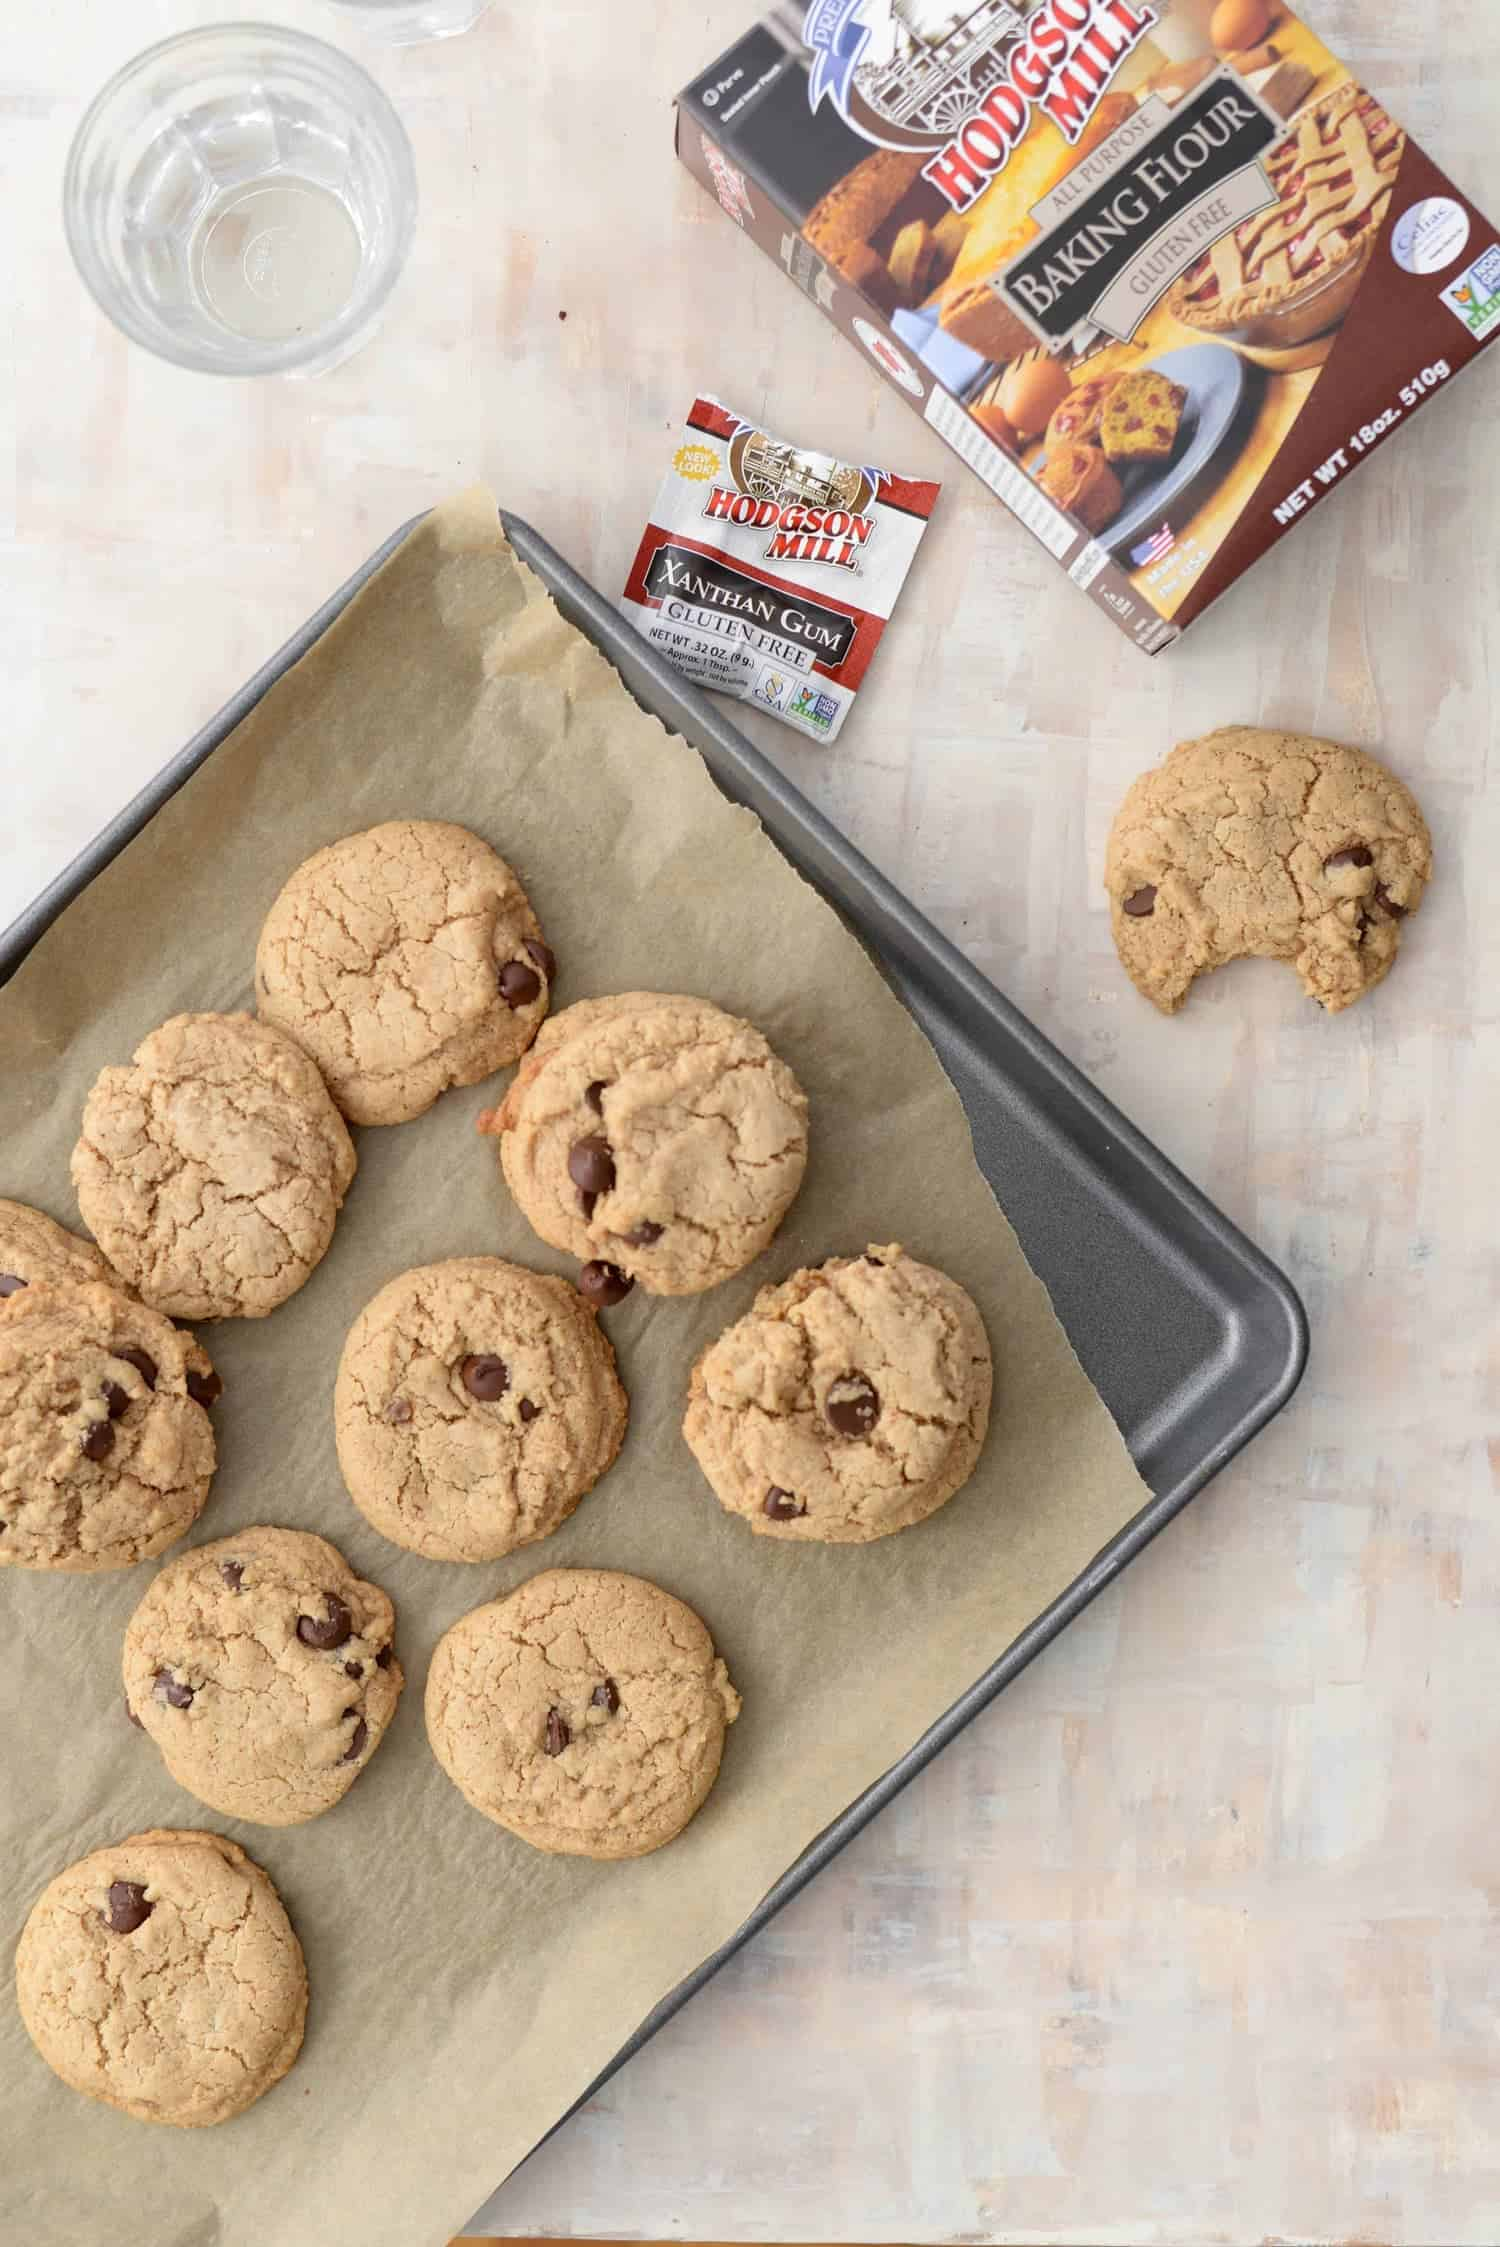 baking sheet with vegan and gluten-free chocolate chip cookies